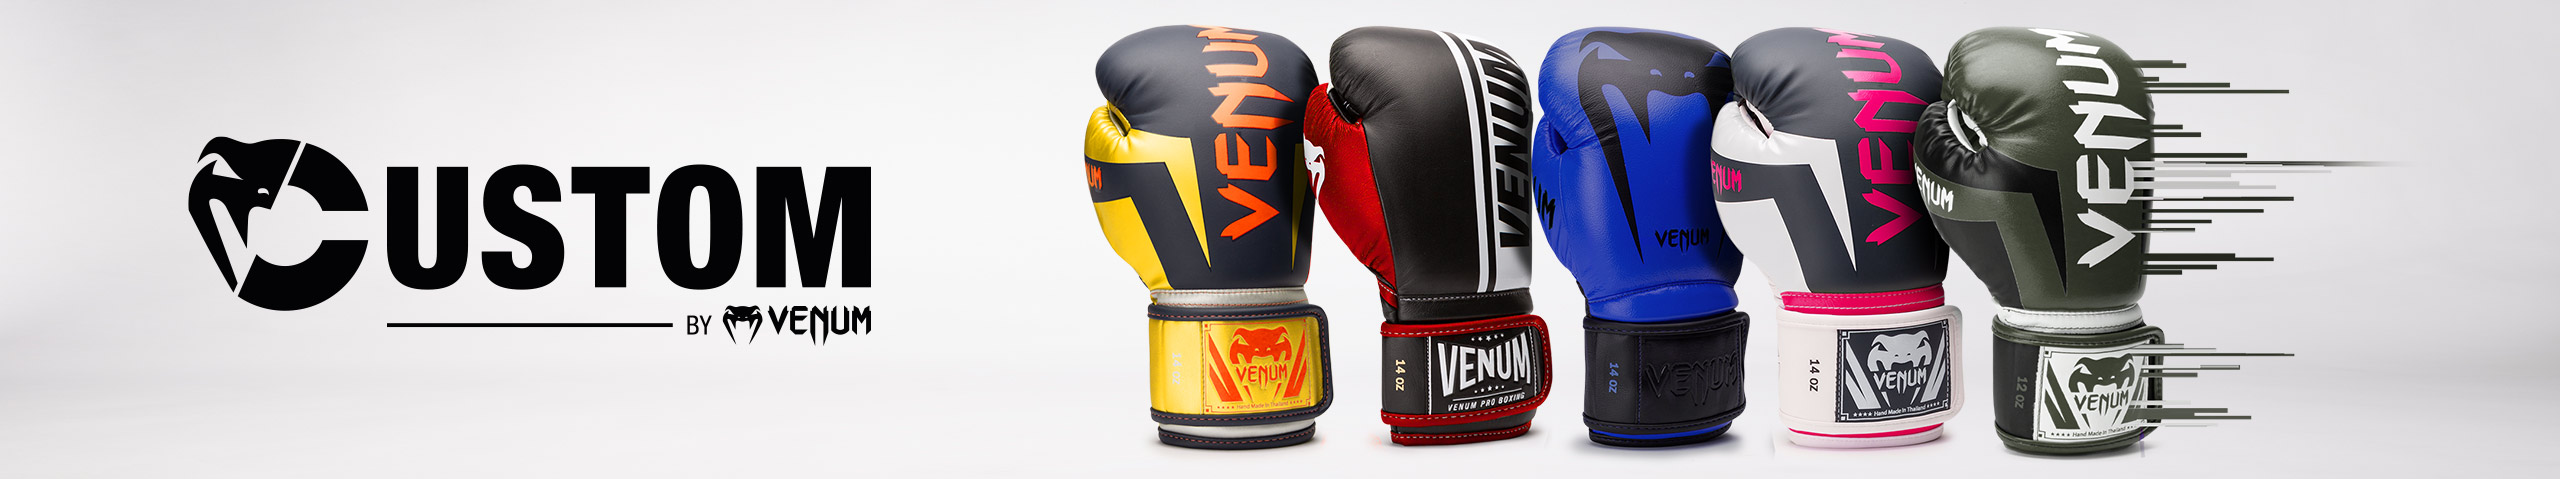 Gants Boxe Venum - Venum.com France